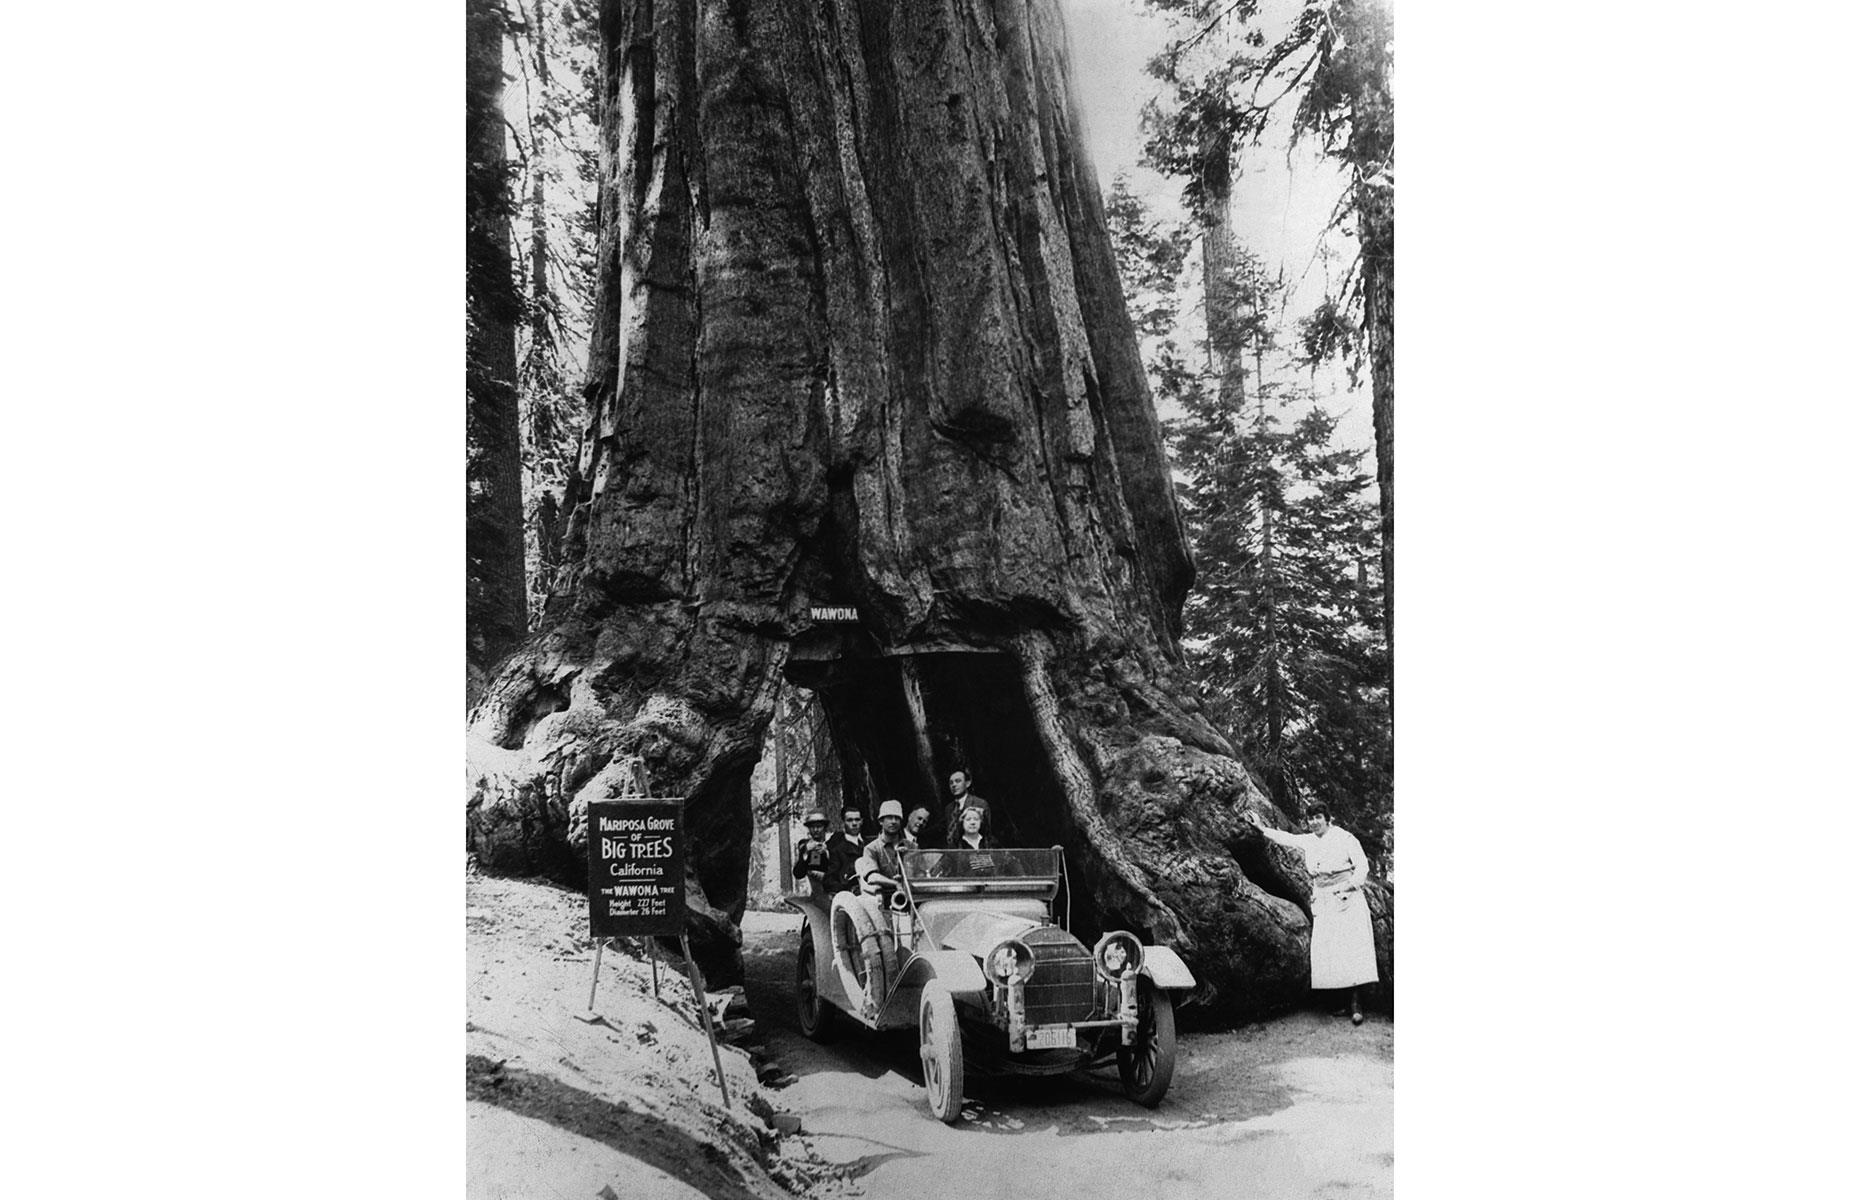 Slide 16 of 47: Beyond its mighty bluffs and glacial valley, Yosemite is known for another thing: its giant sequoia. A top place to see these towering trees is the Mariposa Grove in the park's south. Still home to many monstrous specimens – including the huge Grizzly Giant –the grove once contained the Wawona tree (pictured), a large sequoia known for the tunnel at its base. It fell in the 1960s, but is pictured here in the prime of its life in 1918.